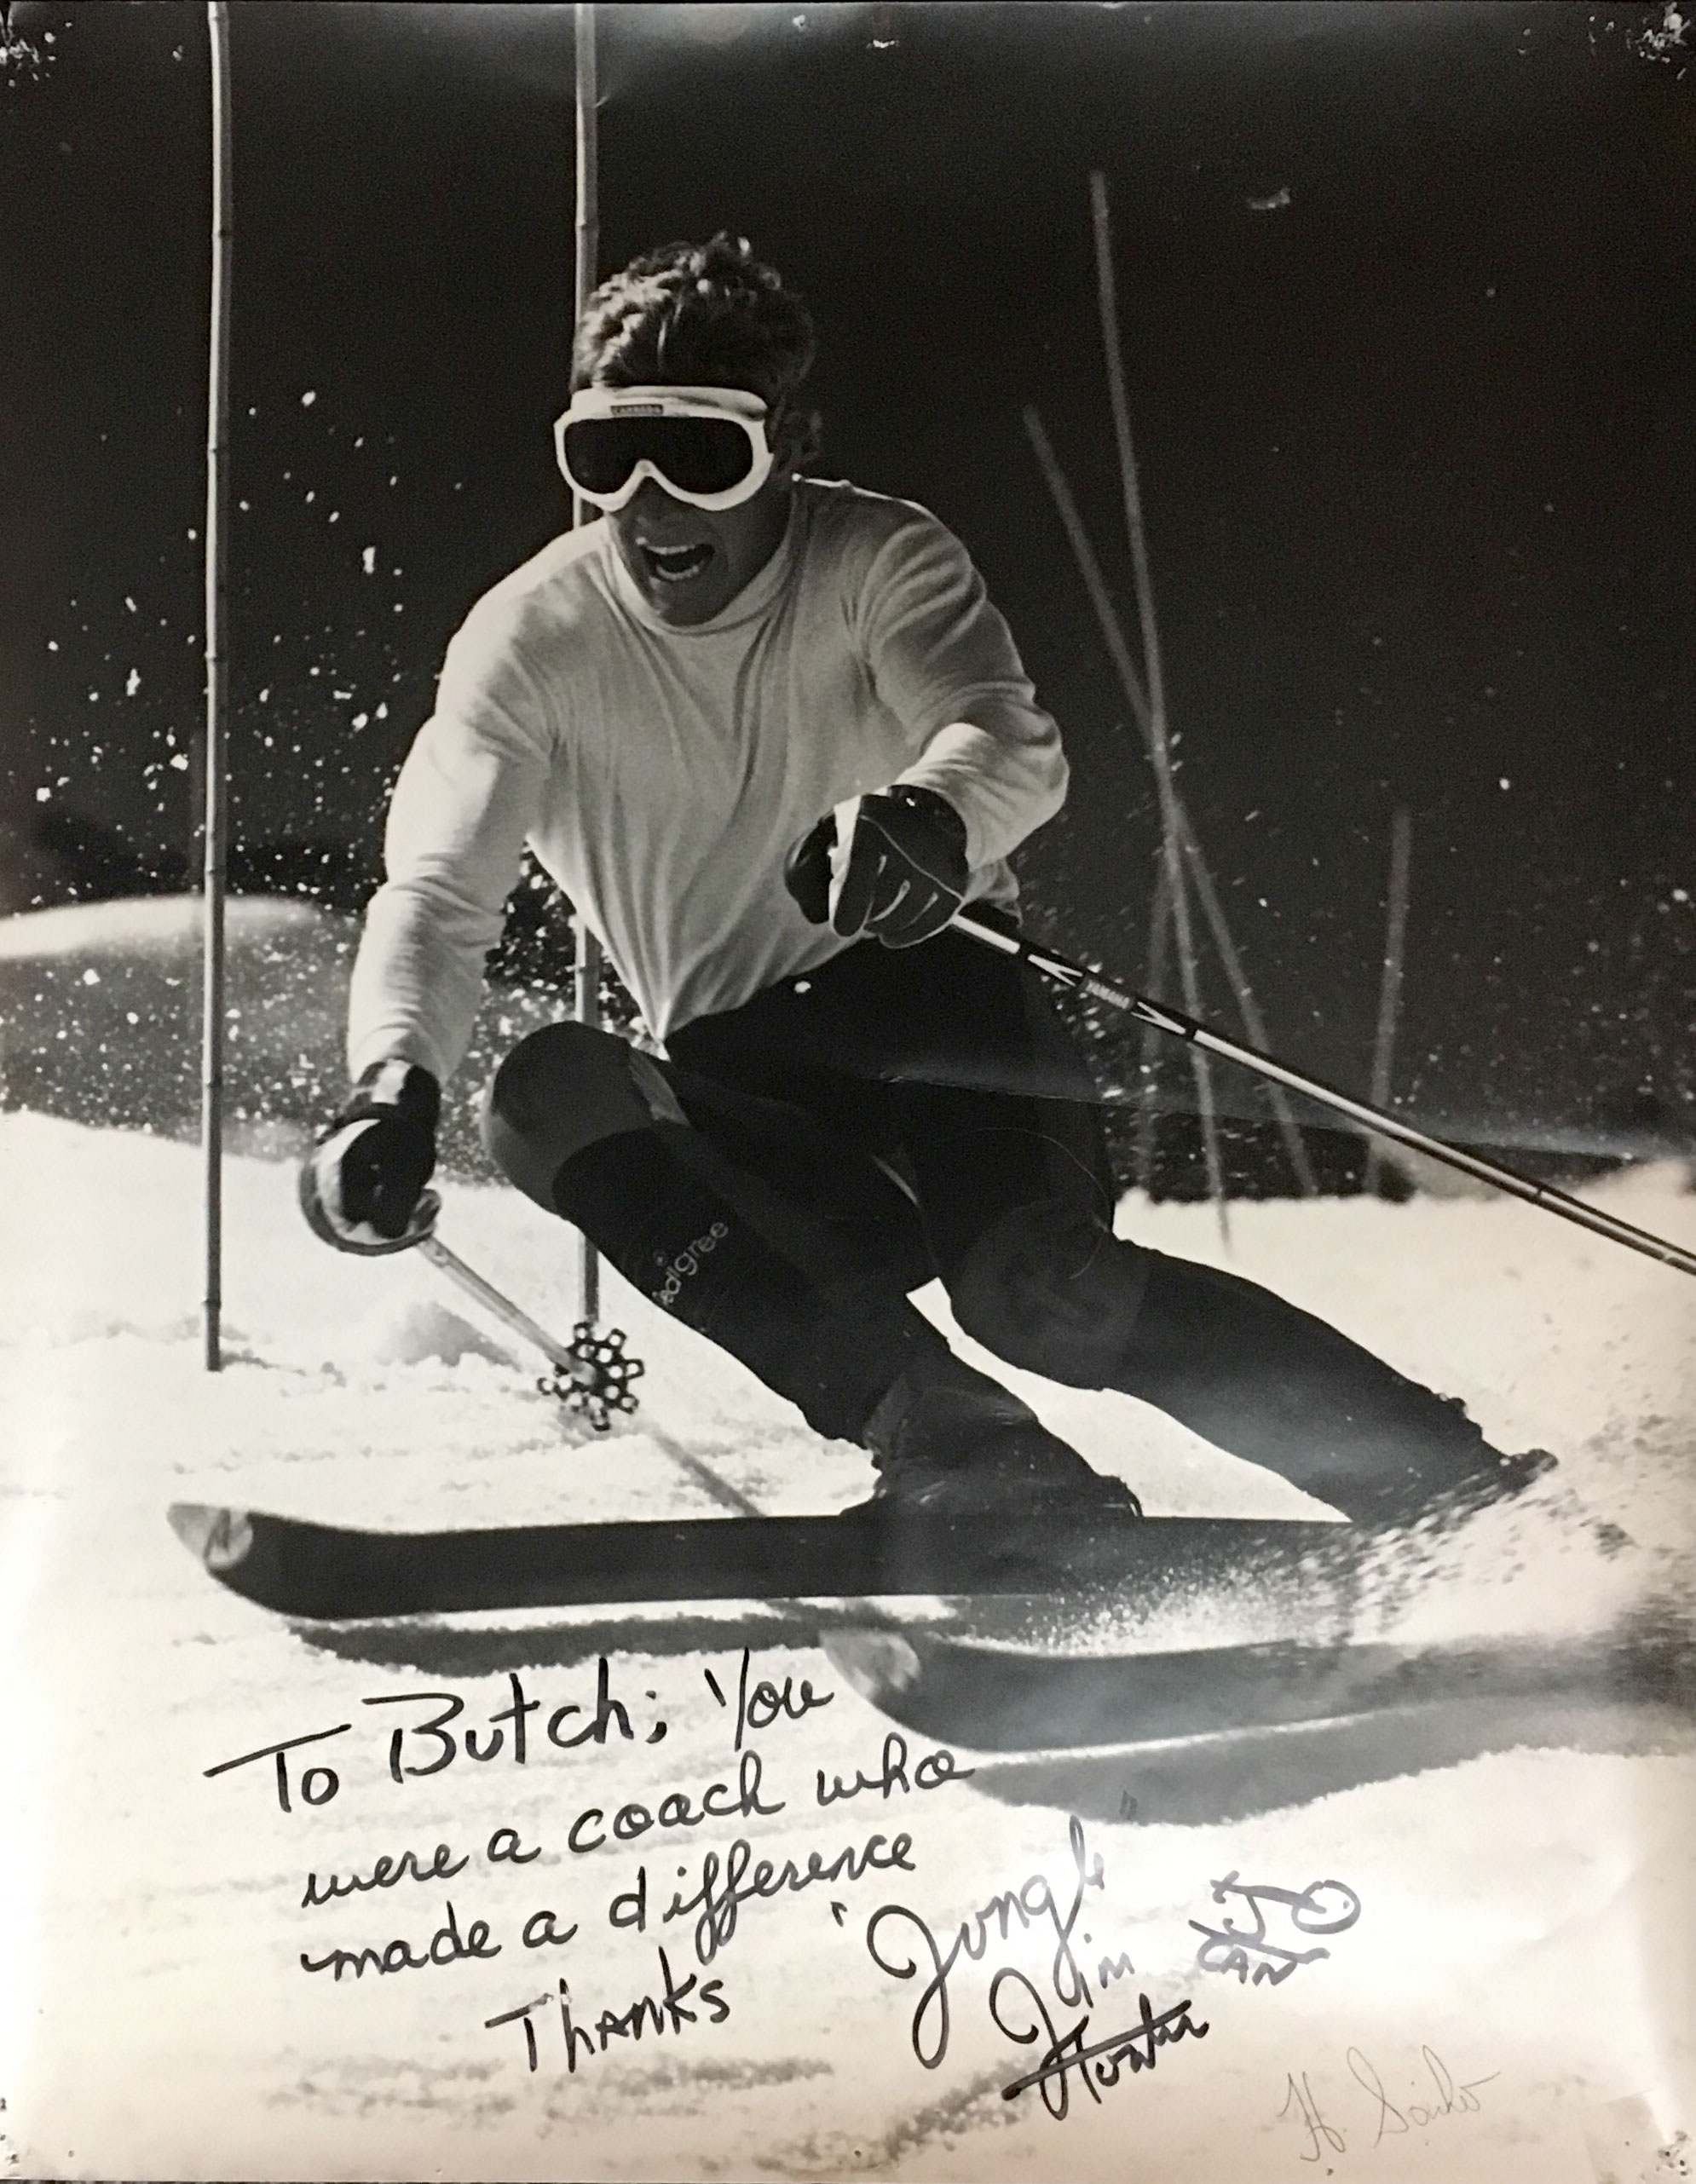 Butch Boutry Ski Shop, Rossland, British Columbia